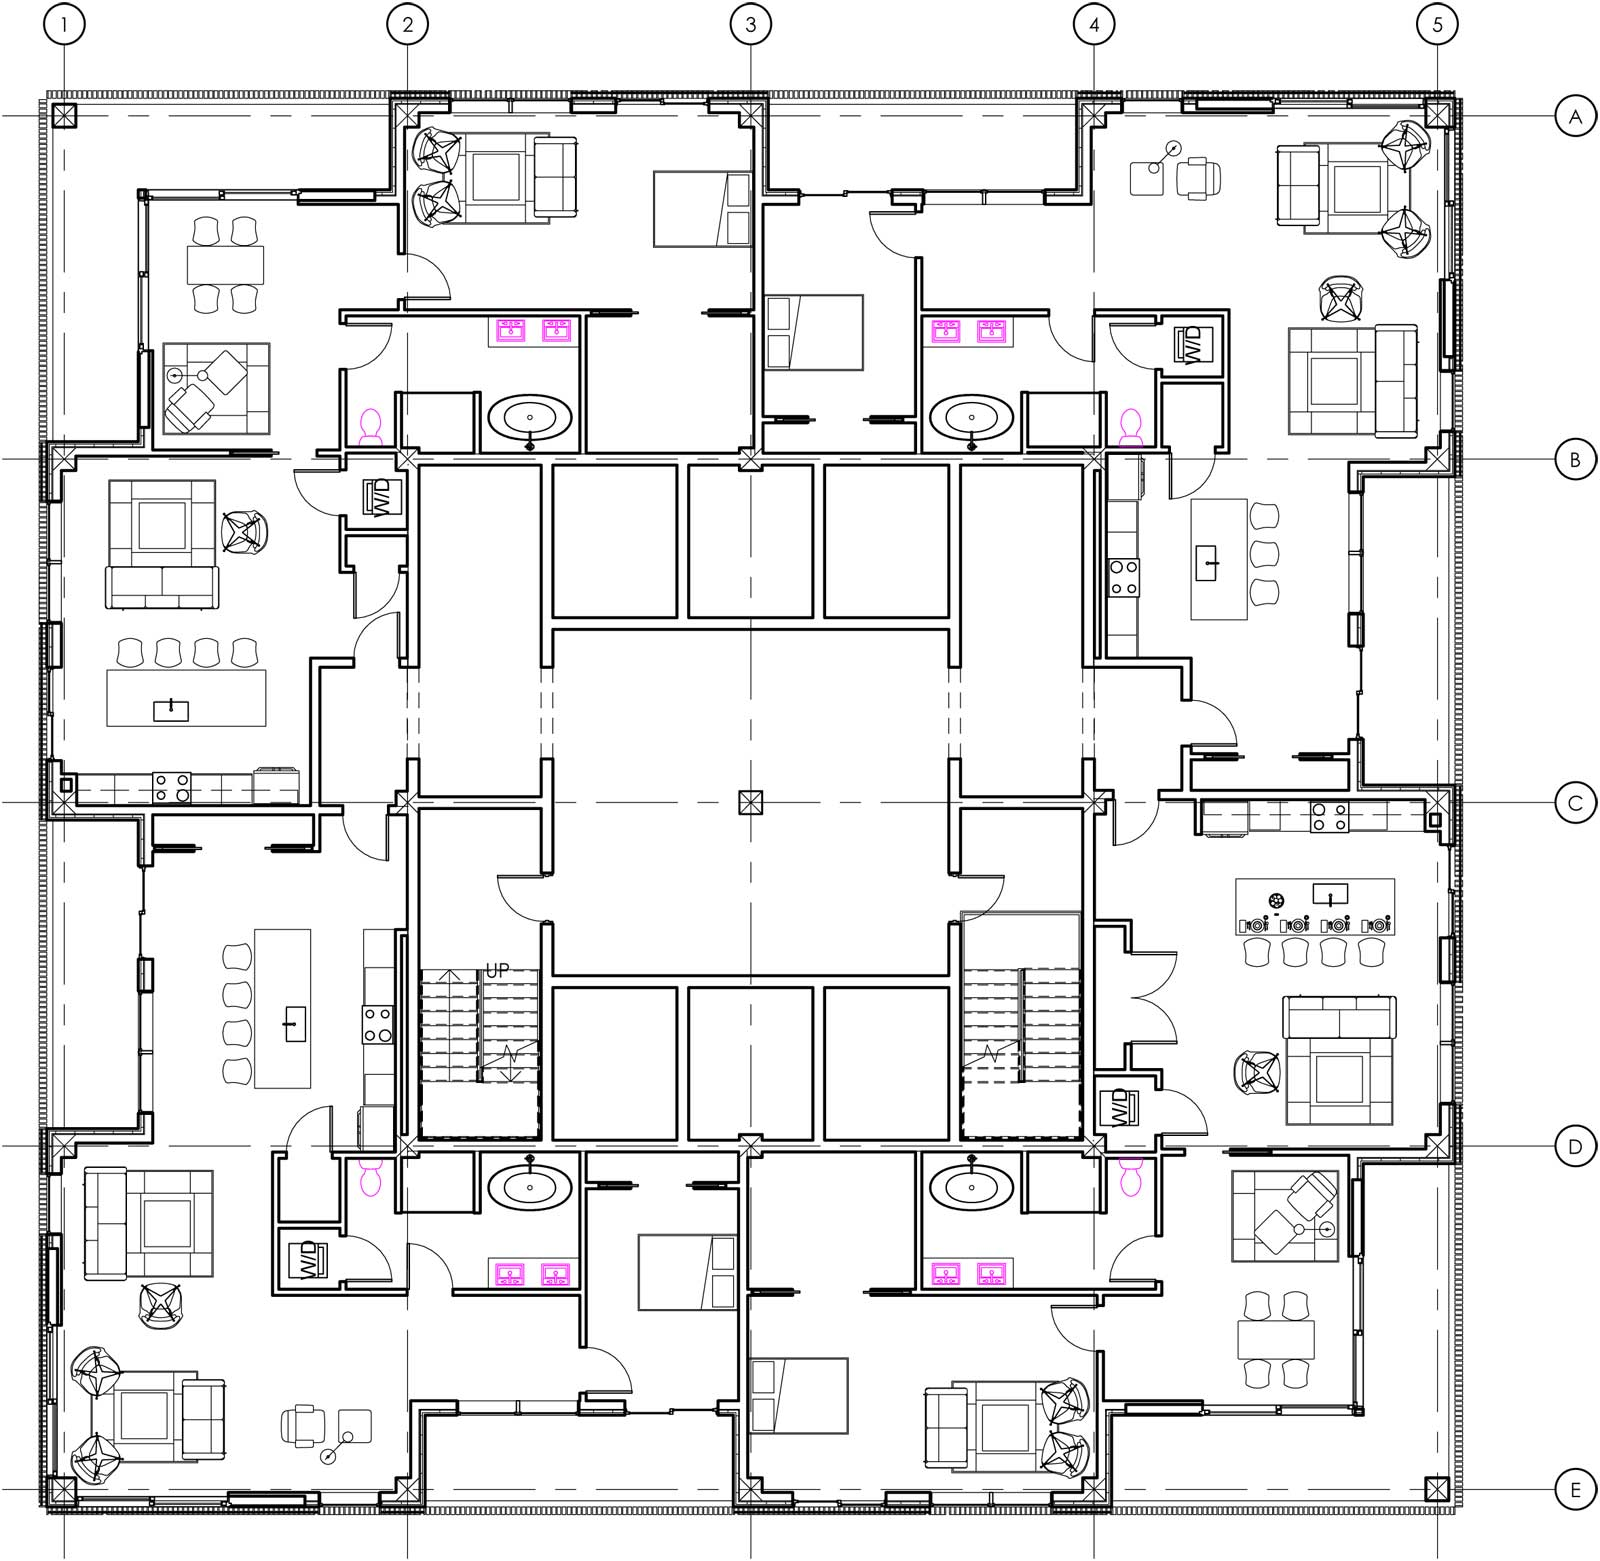 NYC-Timber-Residential-Skyscraper-One-Bedroom-Unit-Floor-Plan-Type-A.jpg